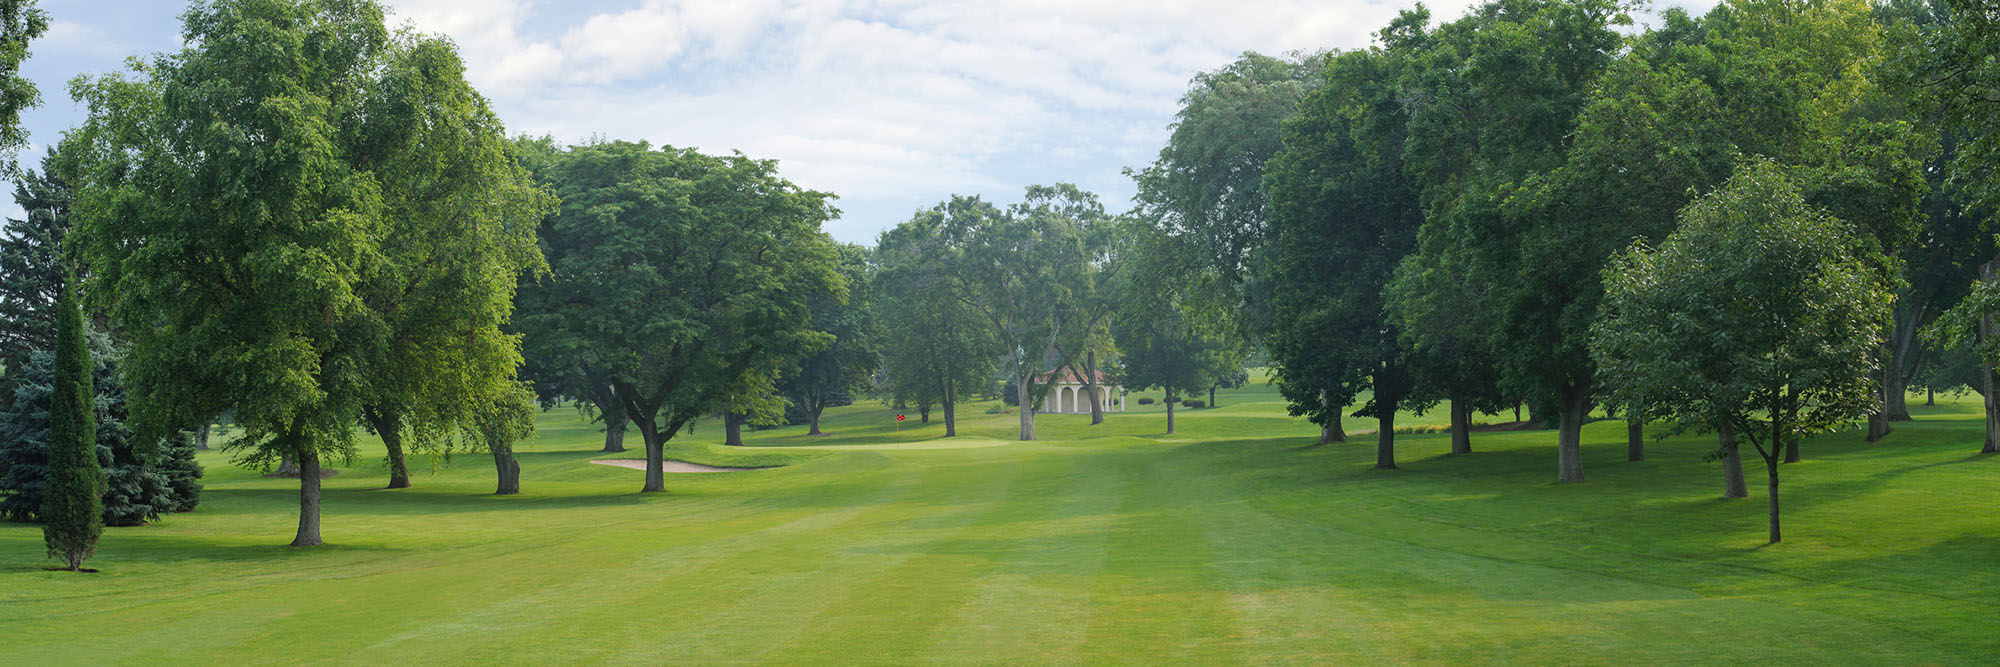 Golf Course Image - Hillcrest Country Club No. 11